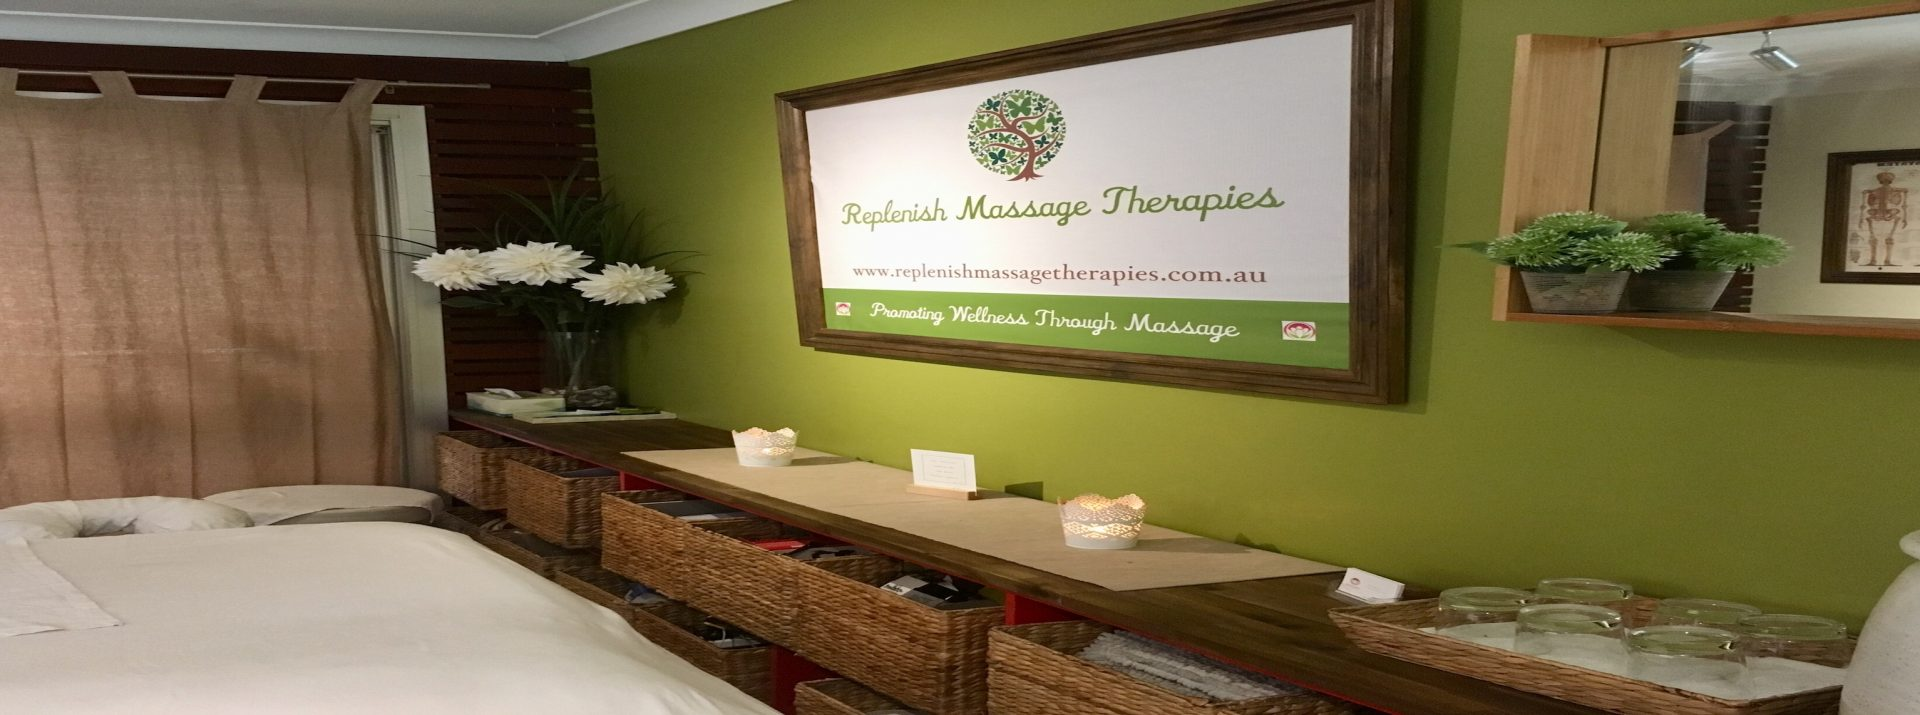 Our mission is to provide exceptional remedial massage treatments